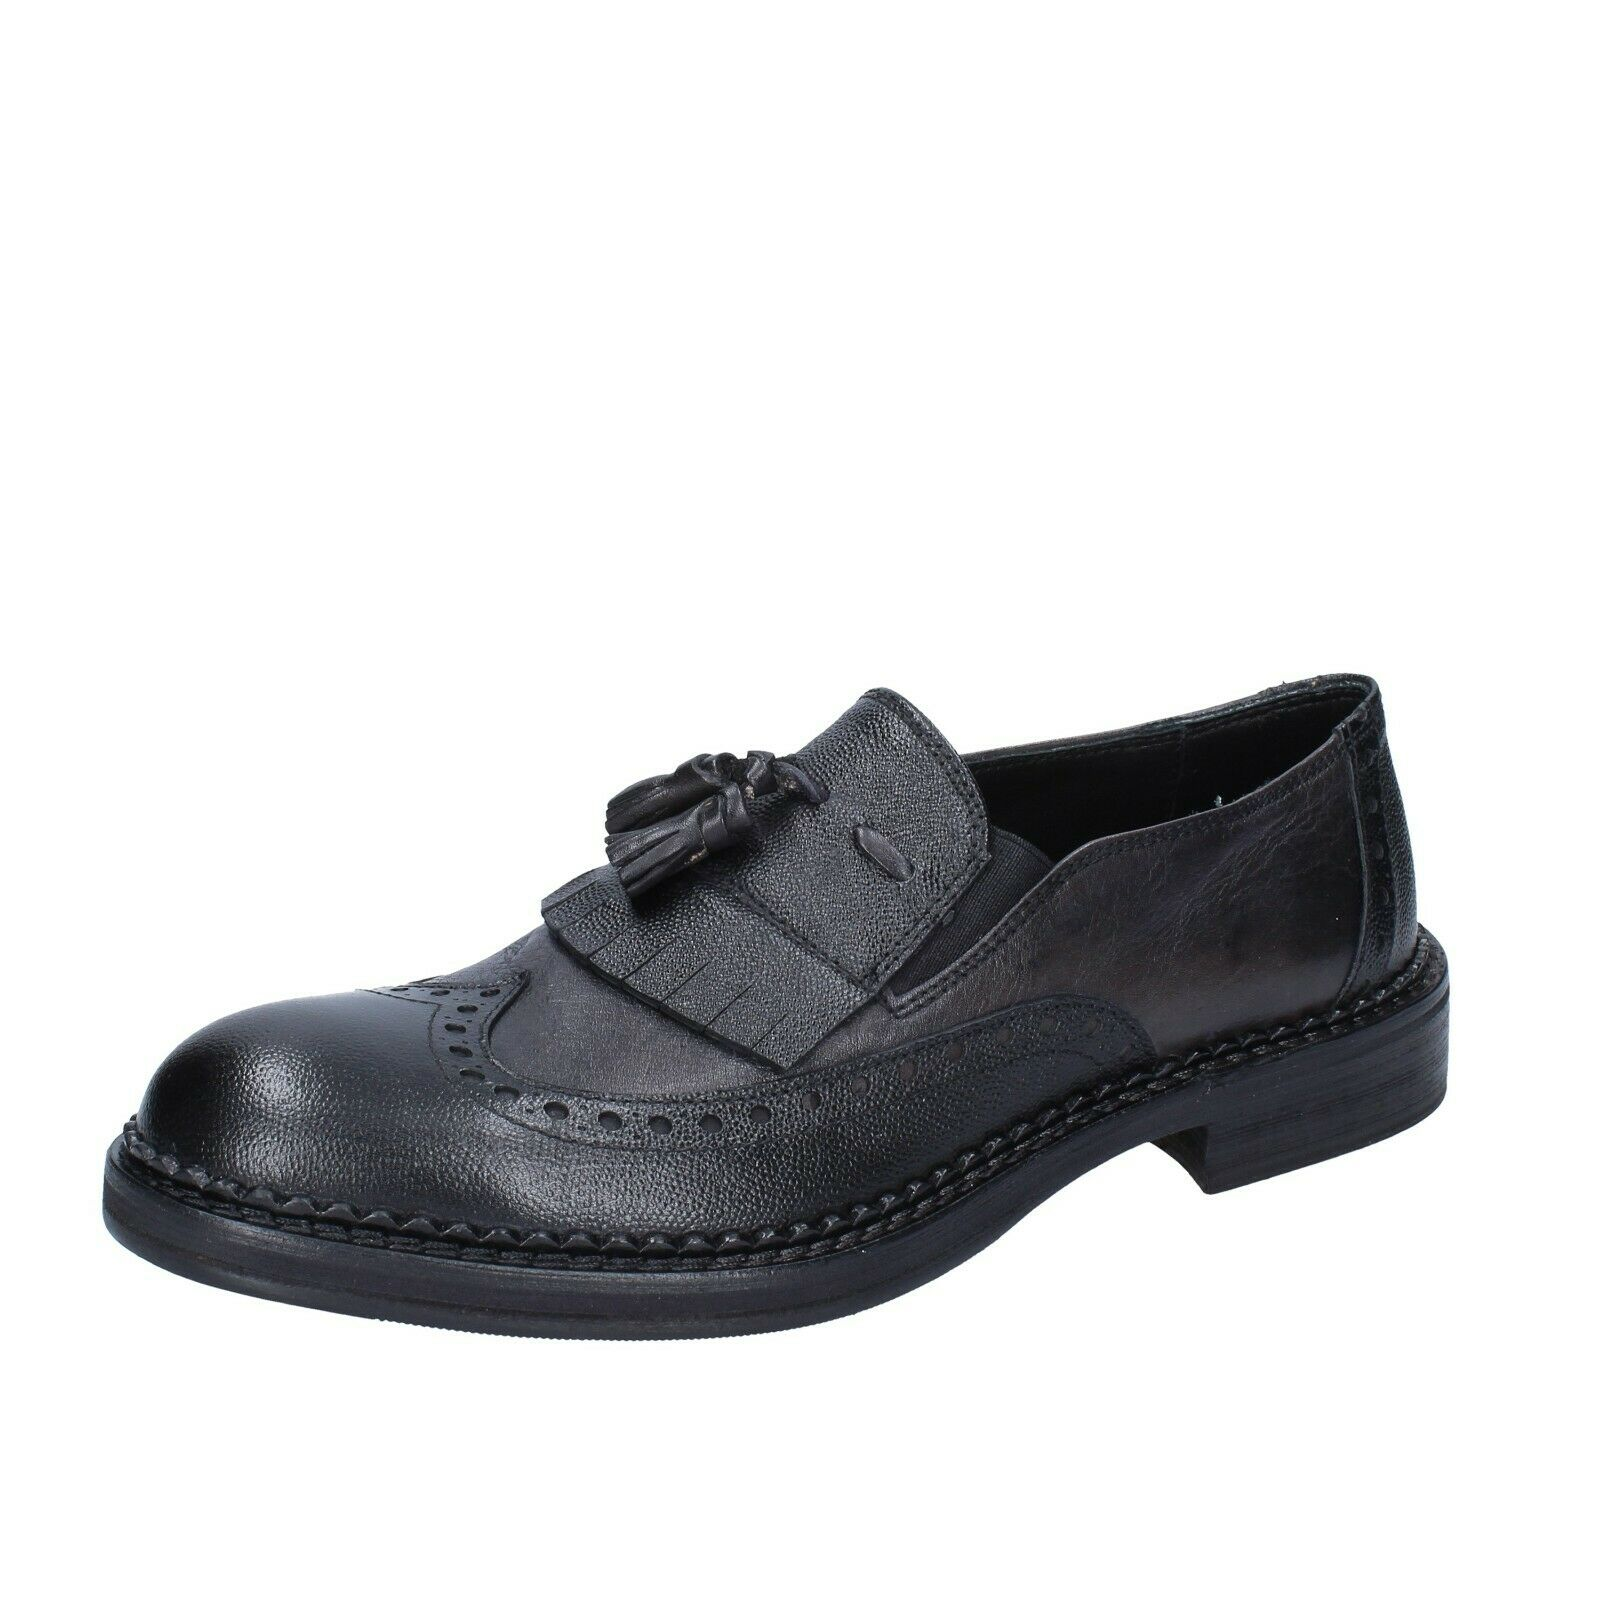 Mens shoes +2 PIU' DUE 9 () loafers grey leather BS758-43